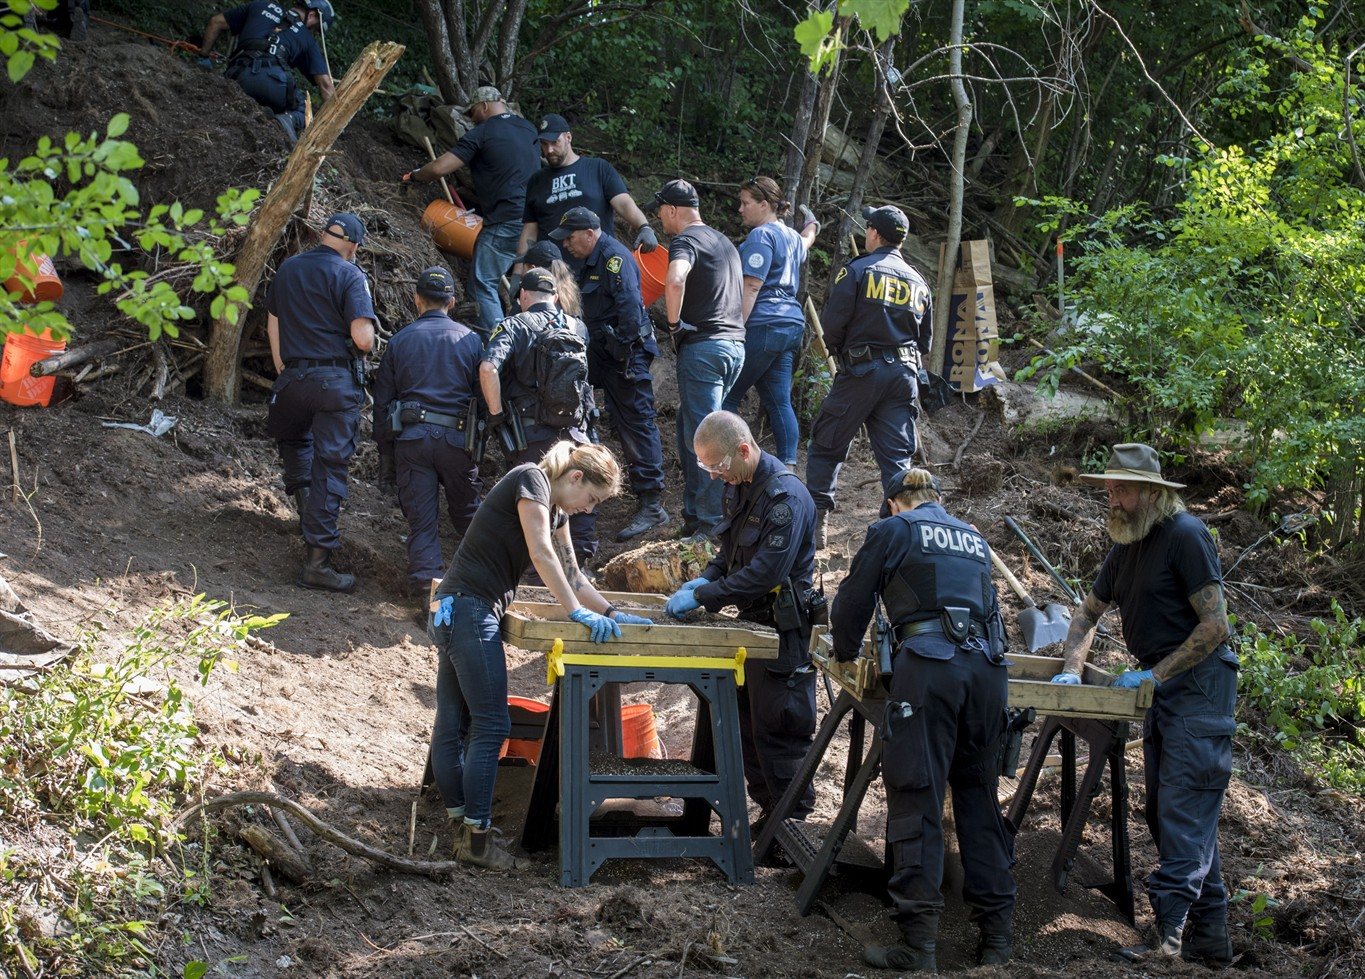 More human remains found near Toronto home linked to Bruce McArthur